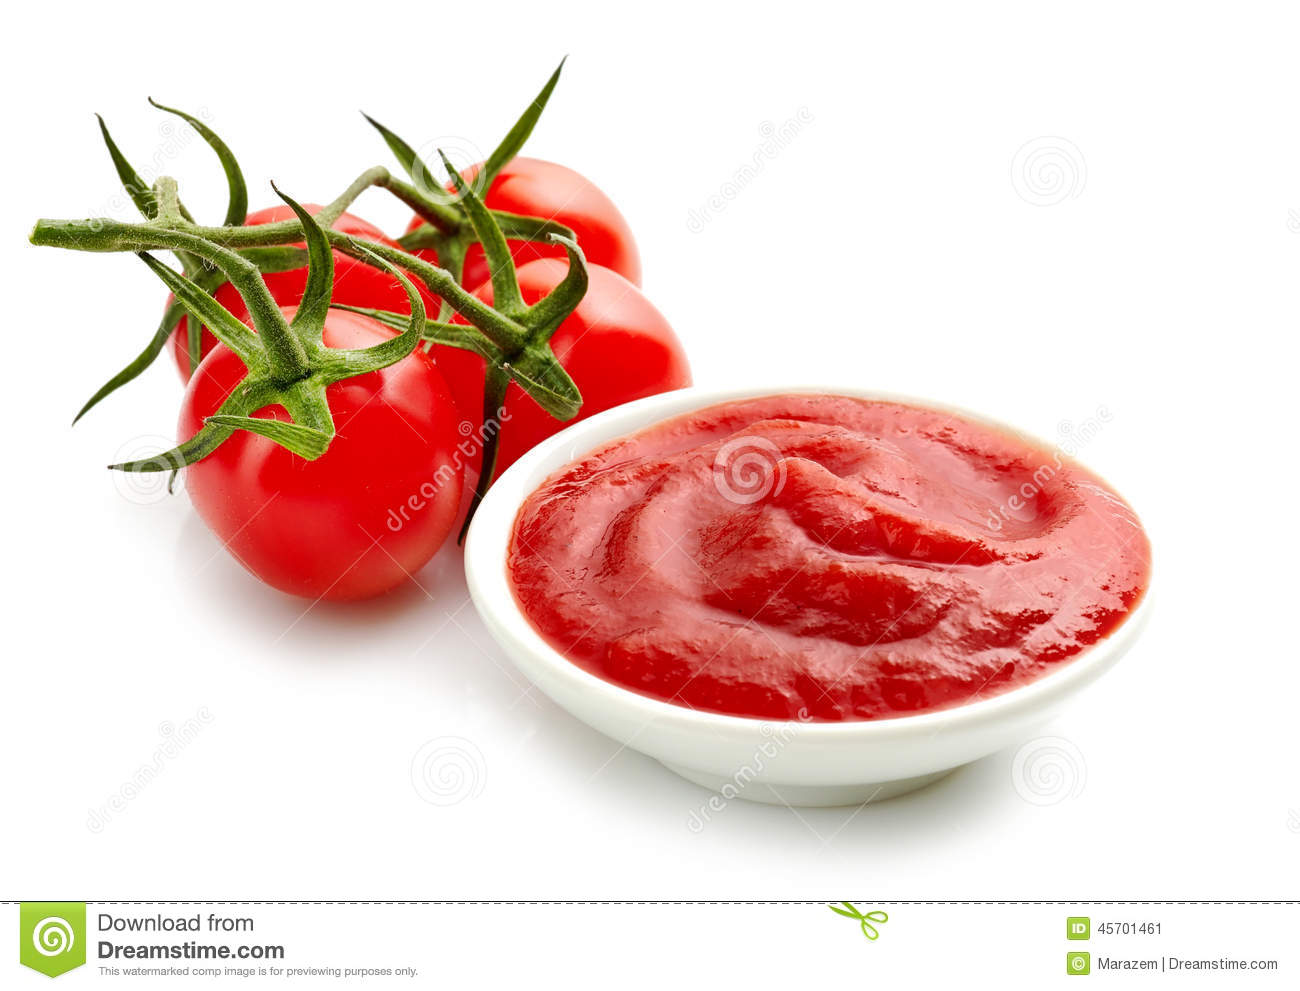 how to use tomato sauce to replace ketchup